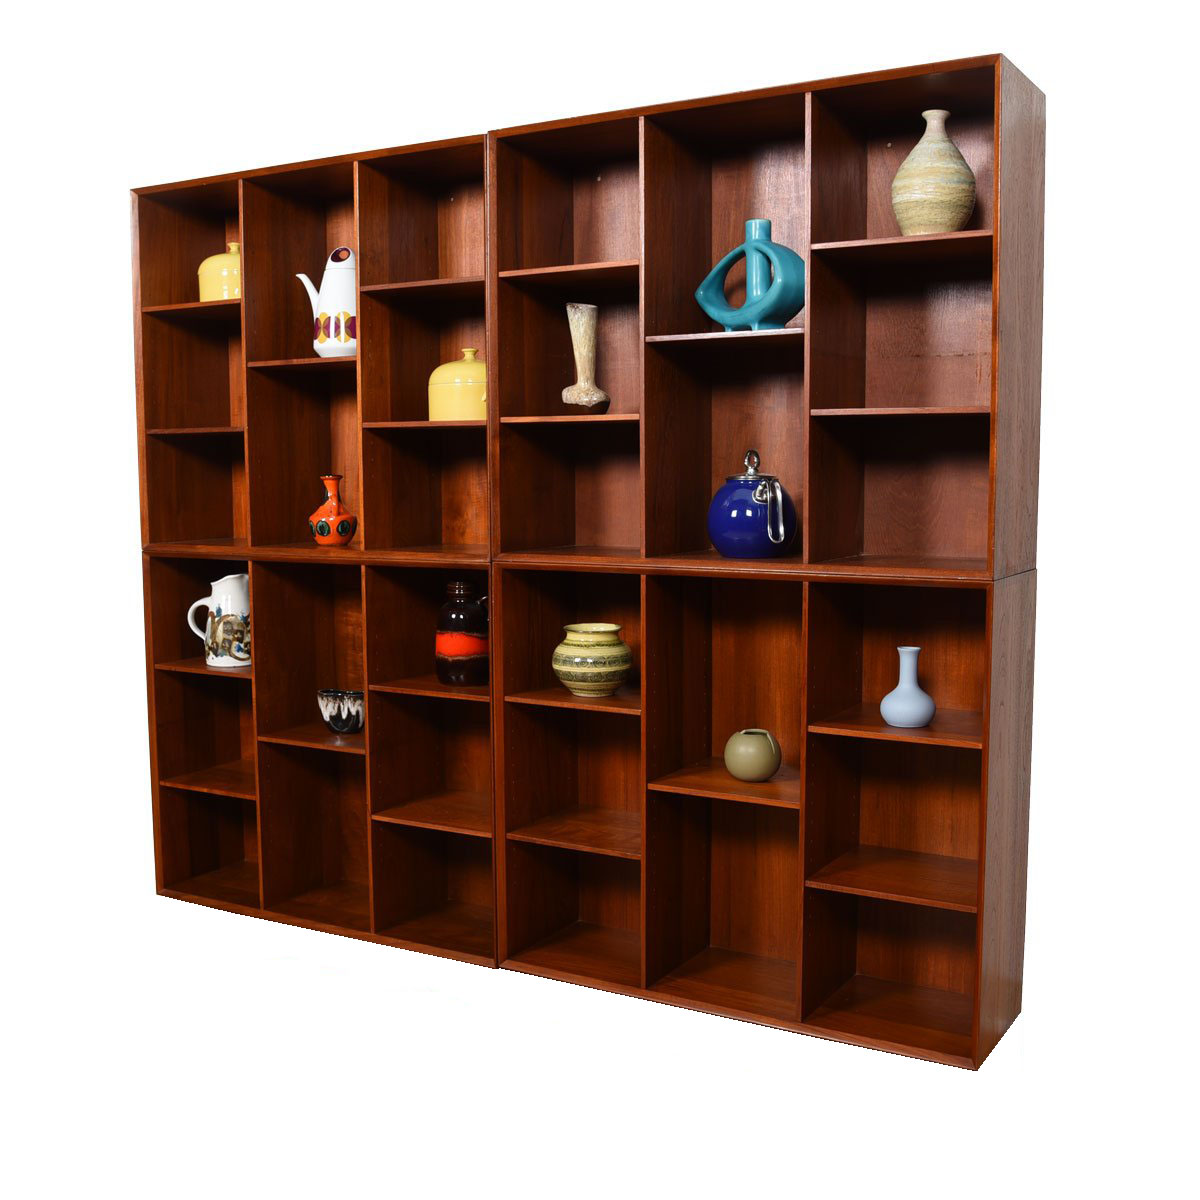 Solid Teak Danish Bookcases by Peter Hvidt – Multiple Configurations